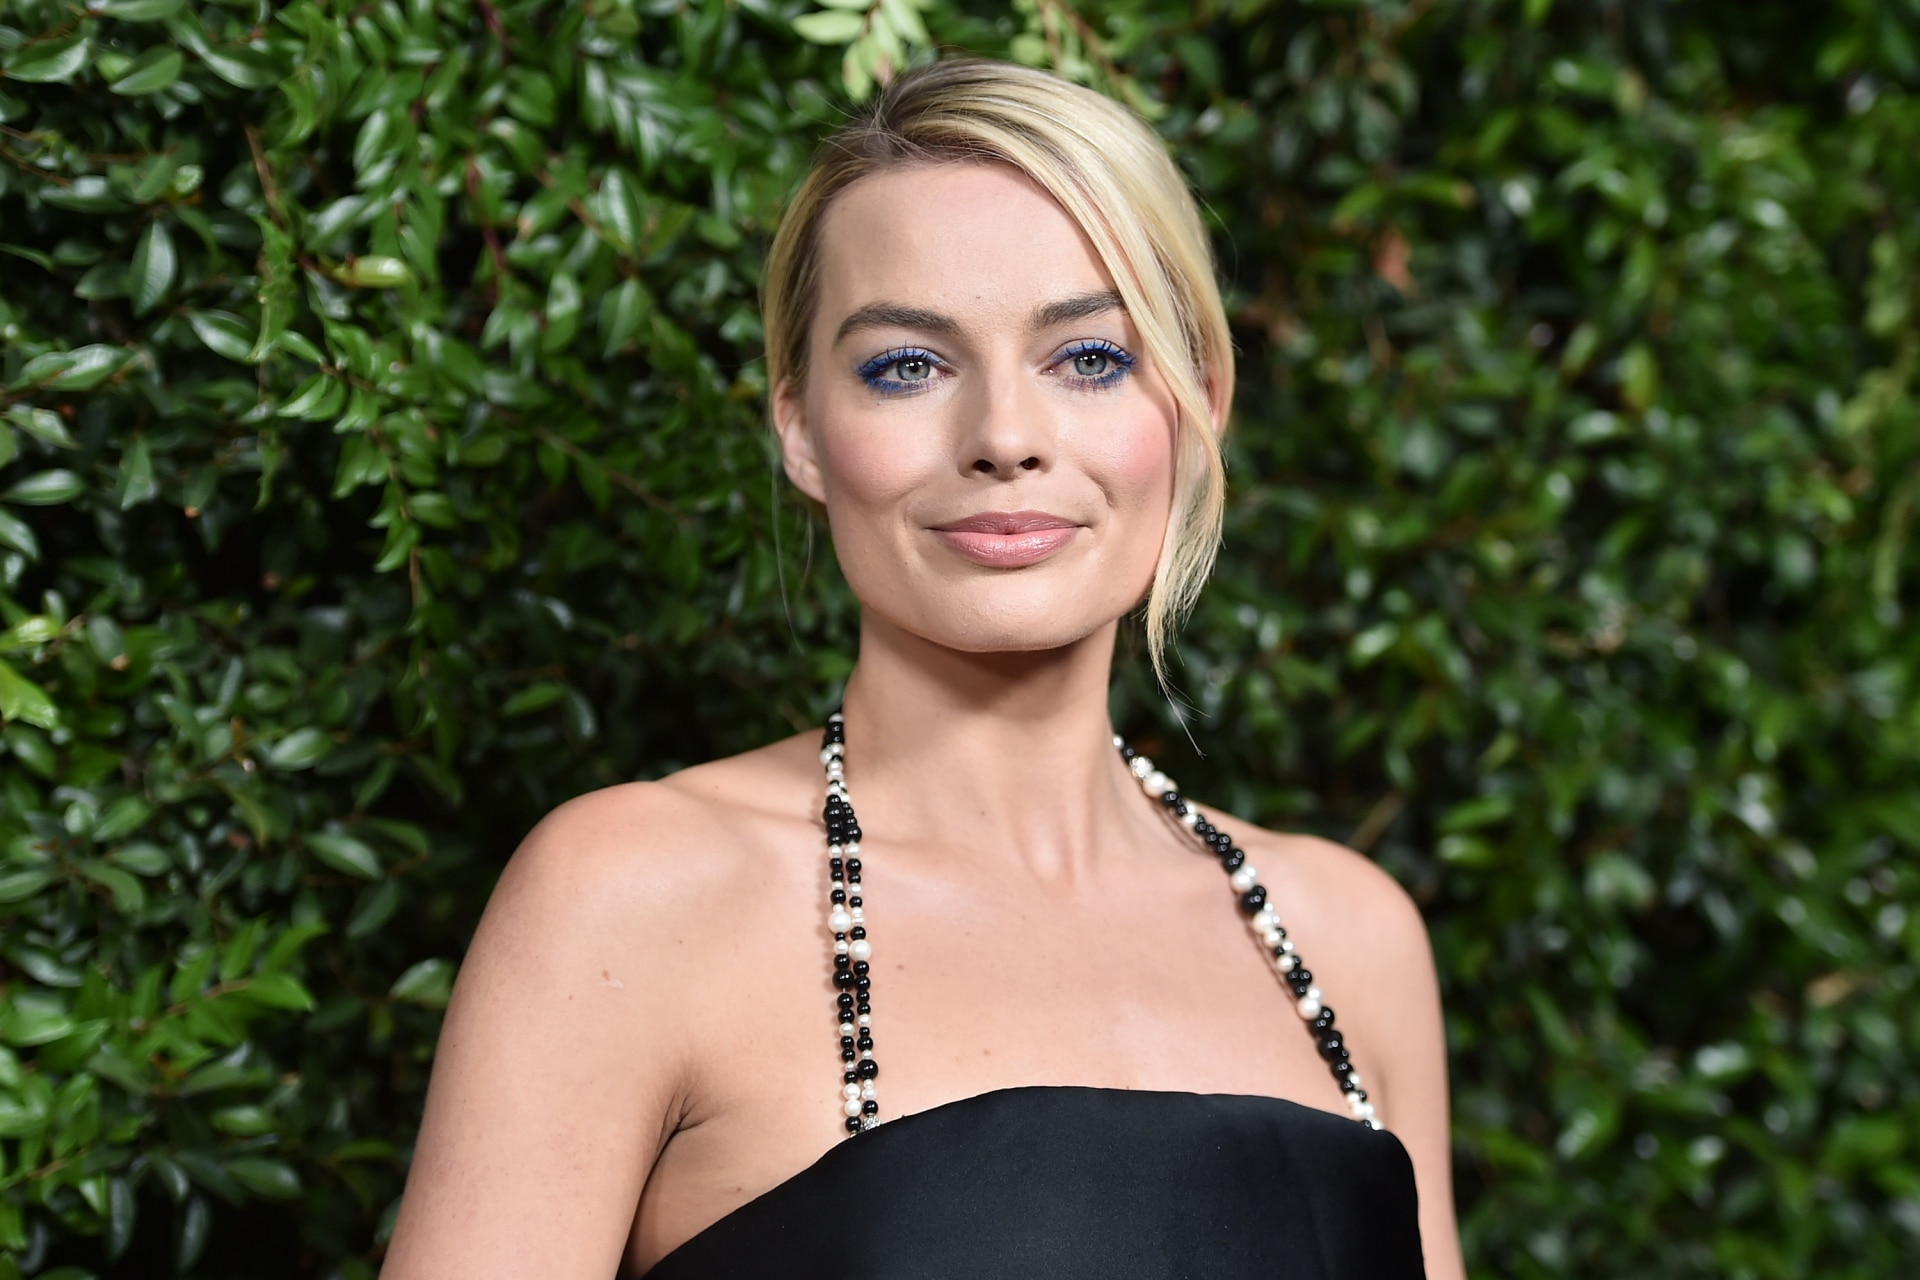 Margot Robbie to play a live action Barbie in her latest film